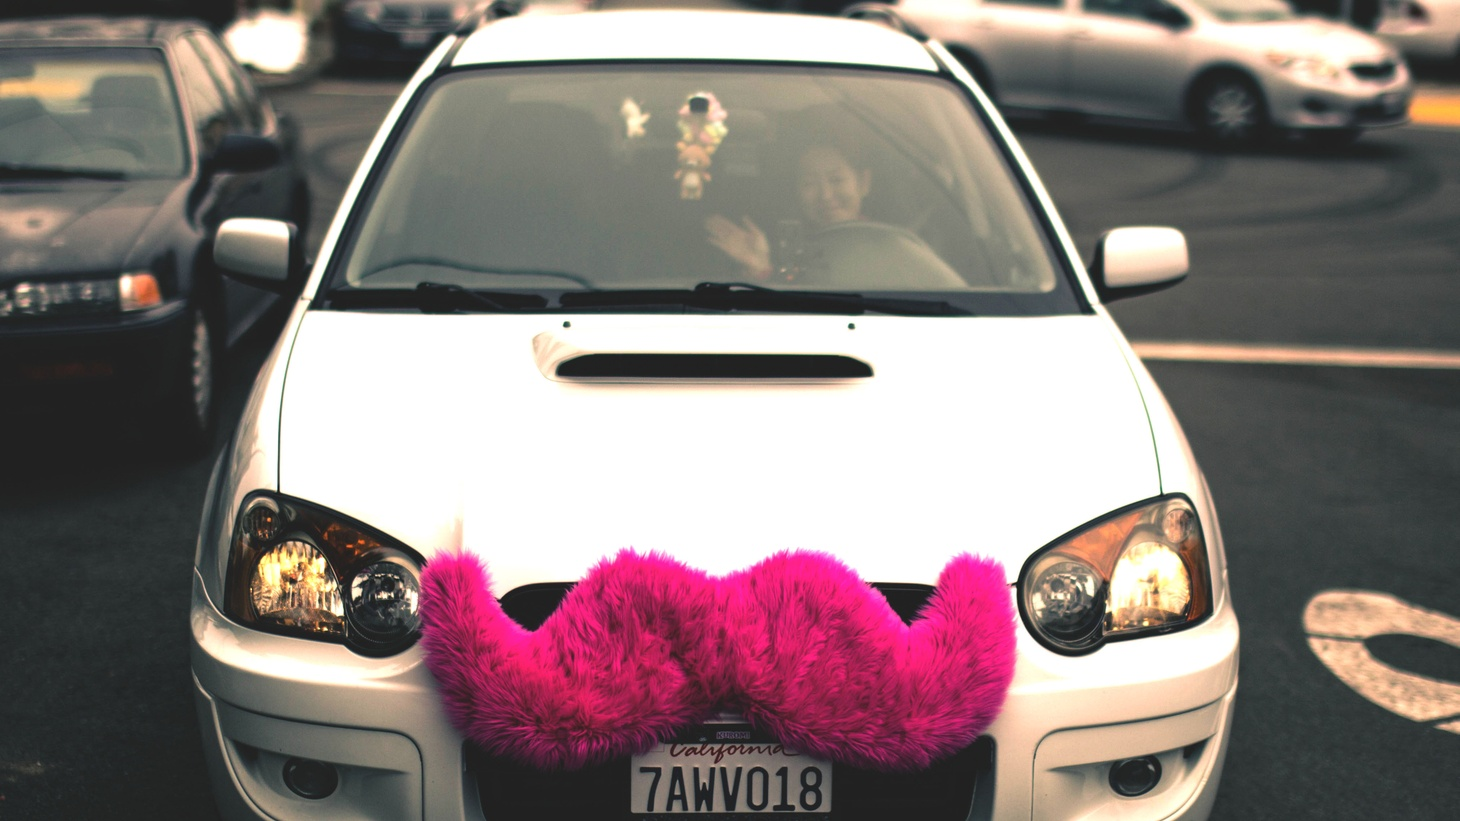 """All you need to call Uber, Lyft or other ride-sharing companies is an app on a smartphone. But that doesn't mean they can pick you up at LA's International Airport. It's been the exclusive preserve of traditional taxi-cabs, and they're not going to give up their turf without political warfare. We'll hear how a """"disruptive technology"""" has pitted City Council members against Mayor Eric Garcetti."""